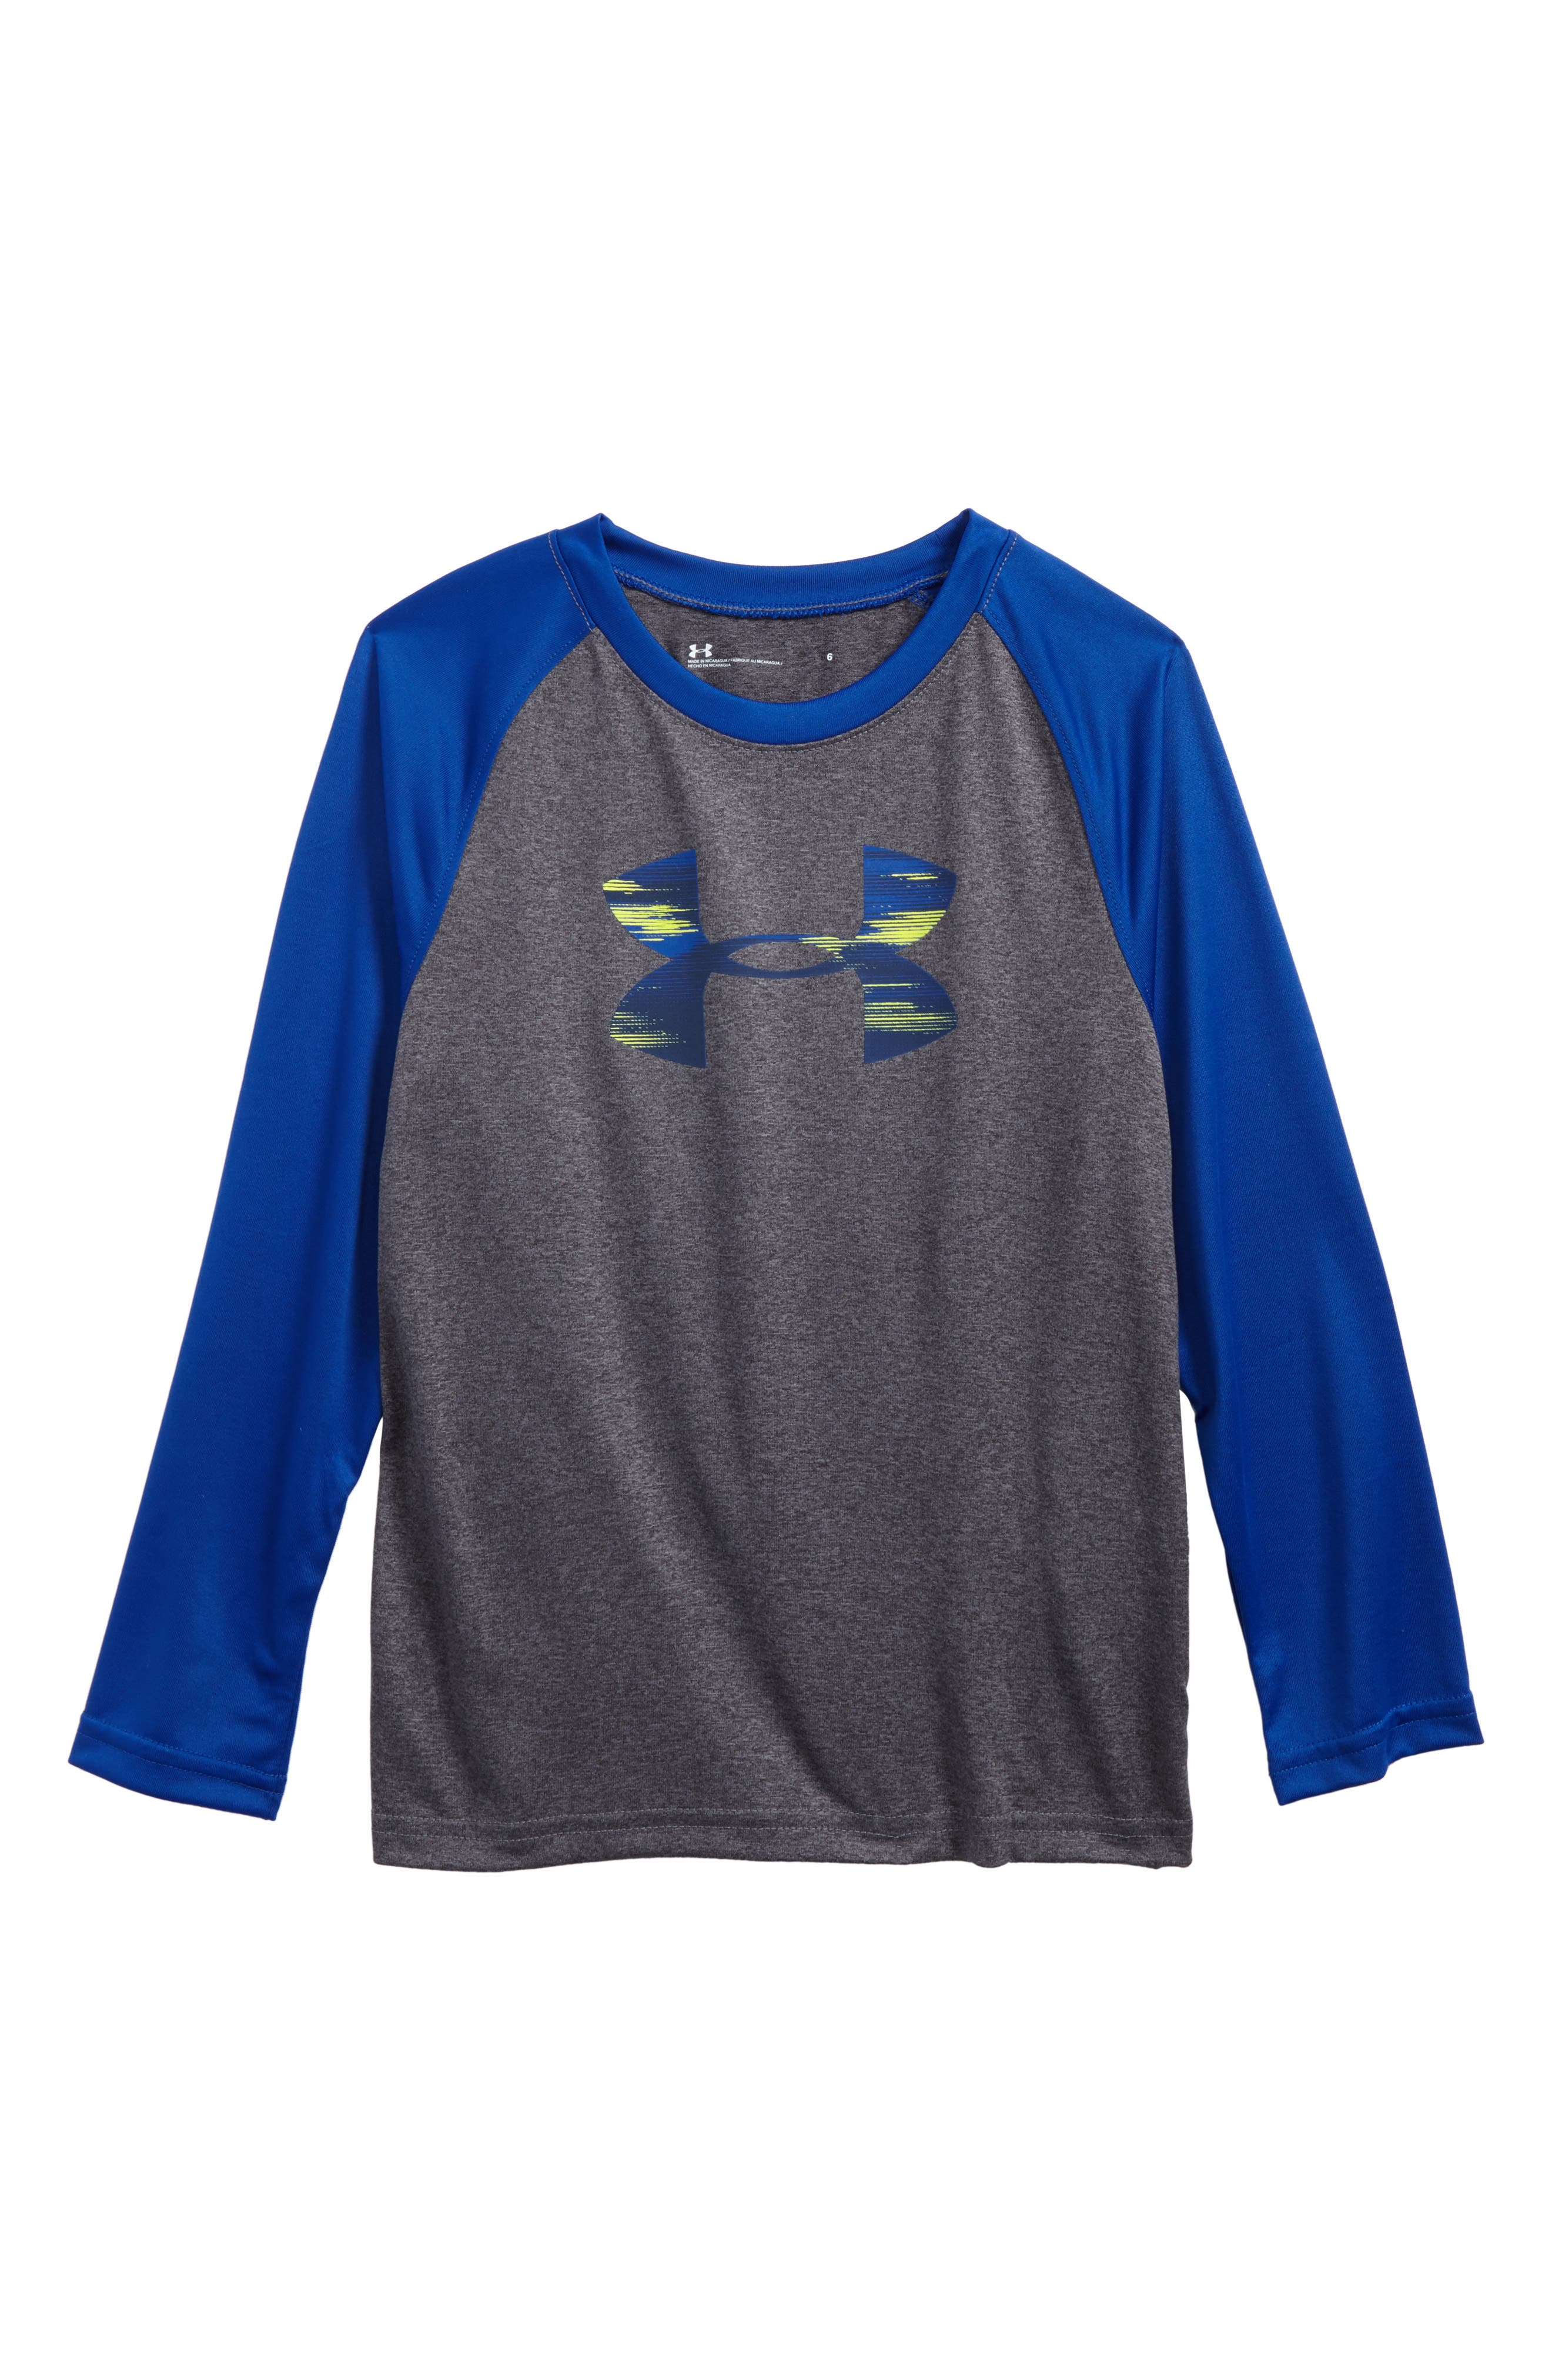 Main Image - Under Armour Accelerate Big Logo T-Shirt (Toddler Boys & Little Boys)